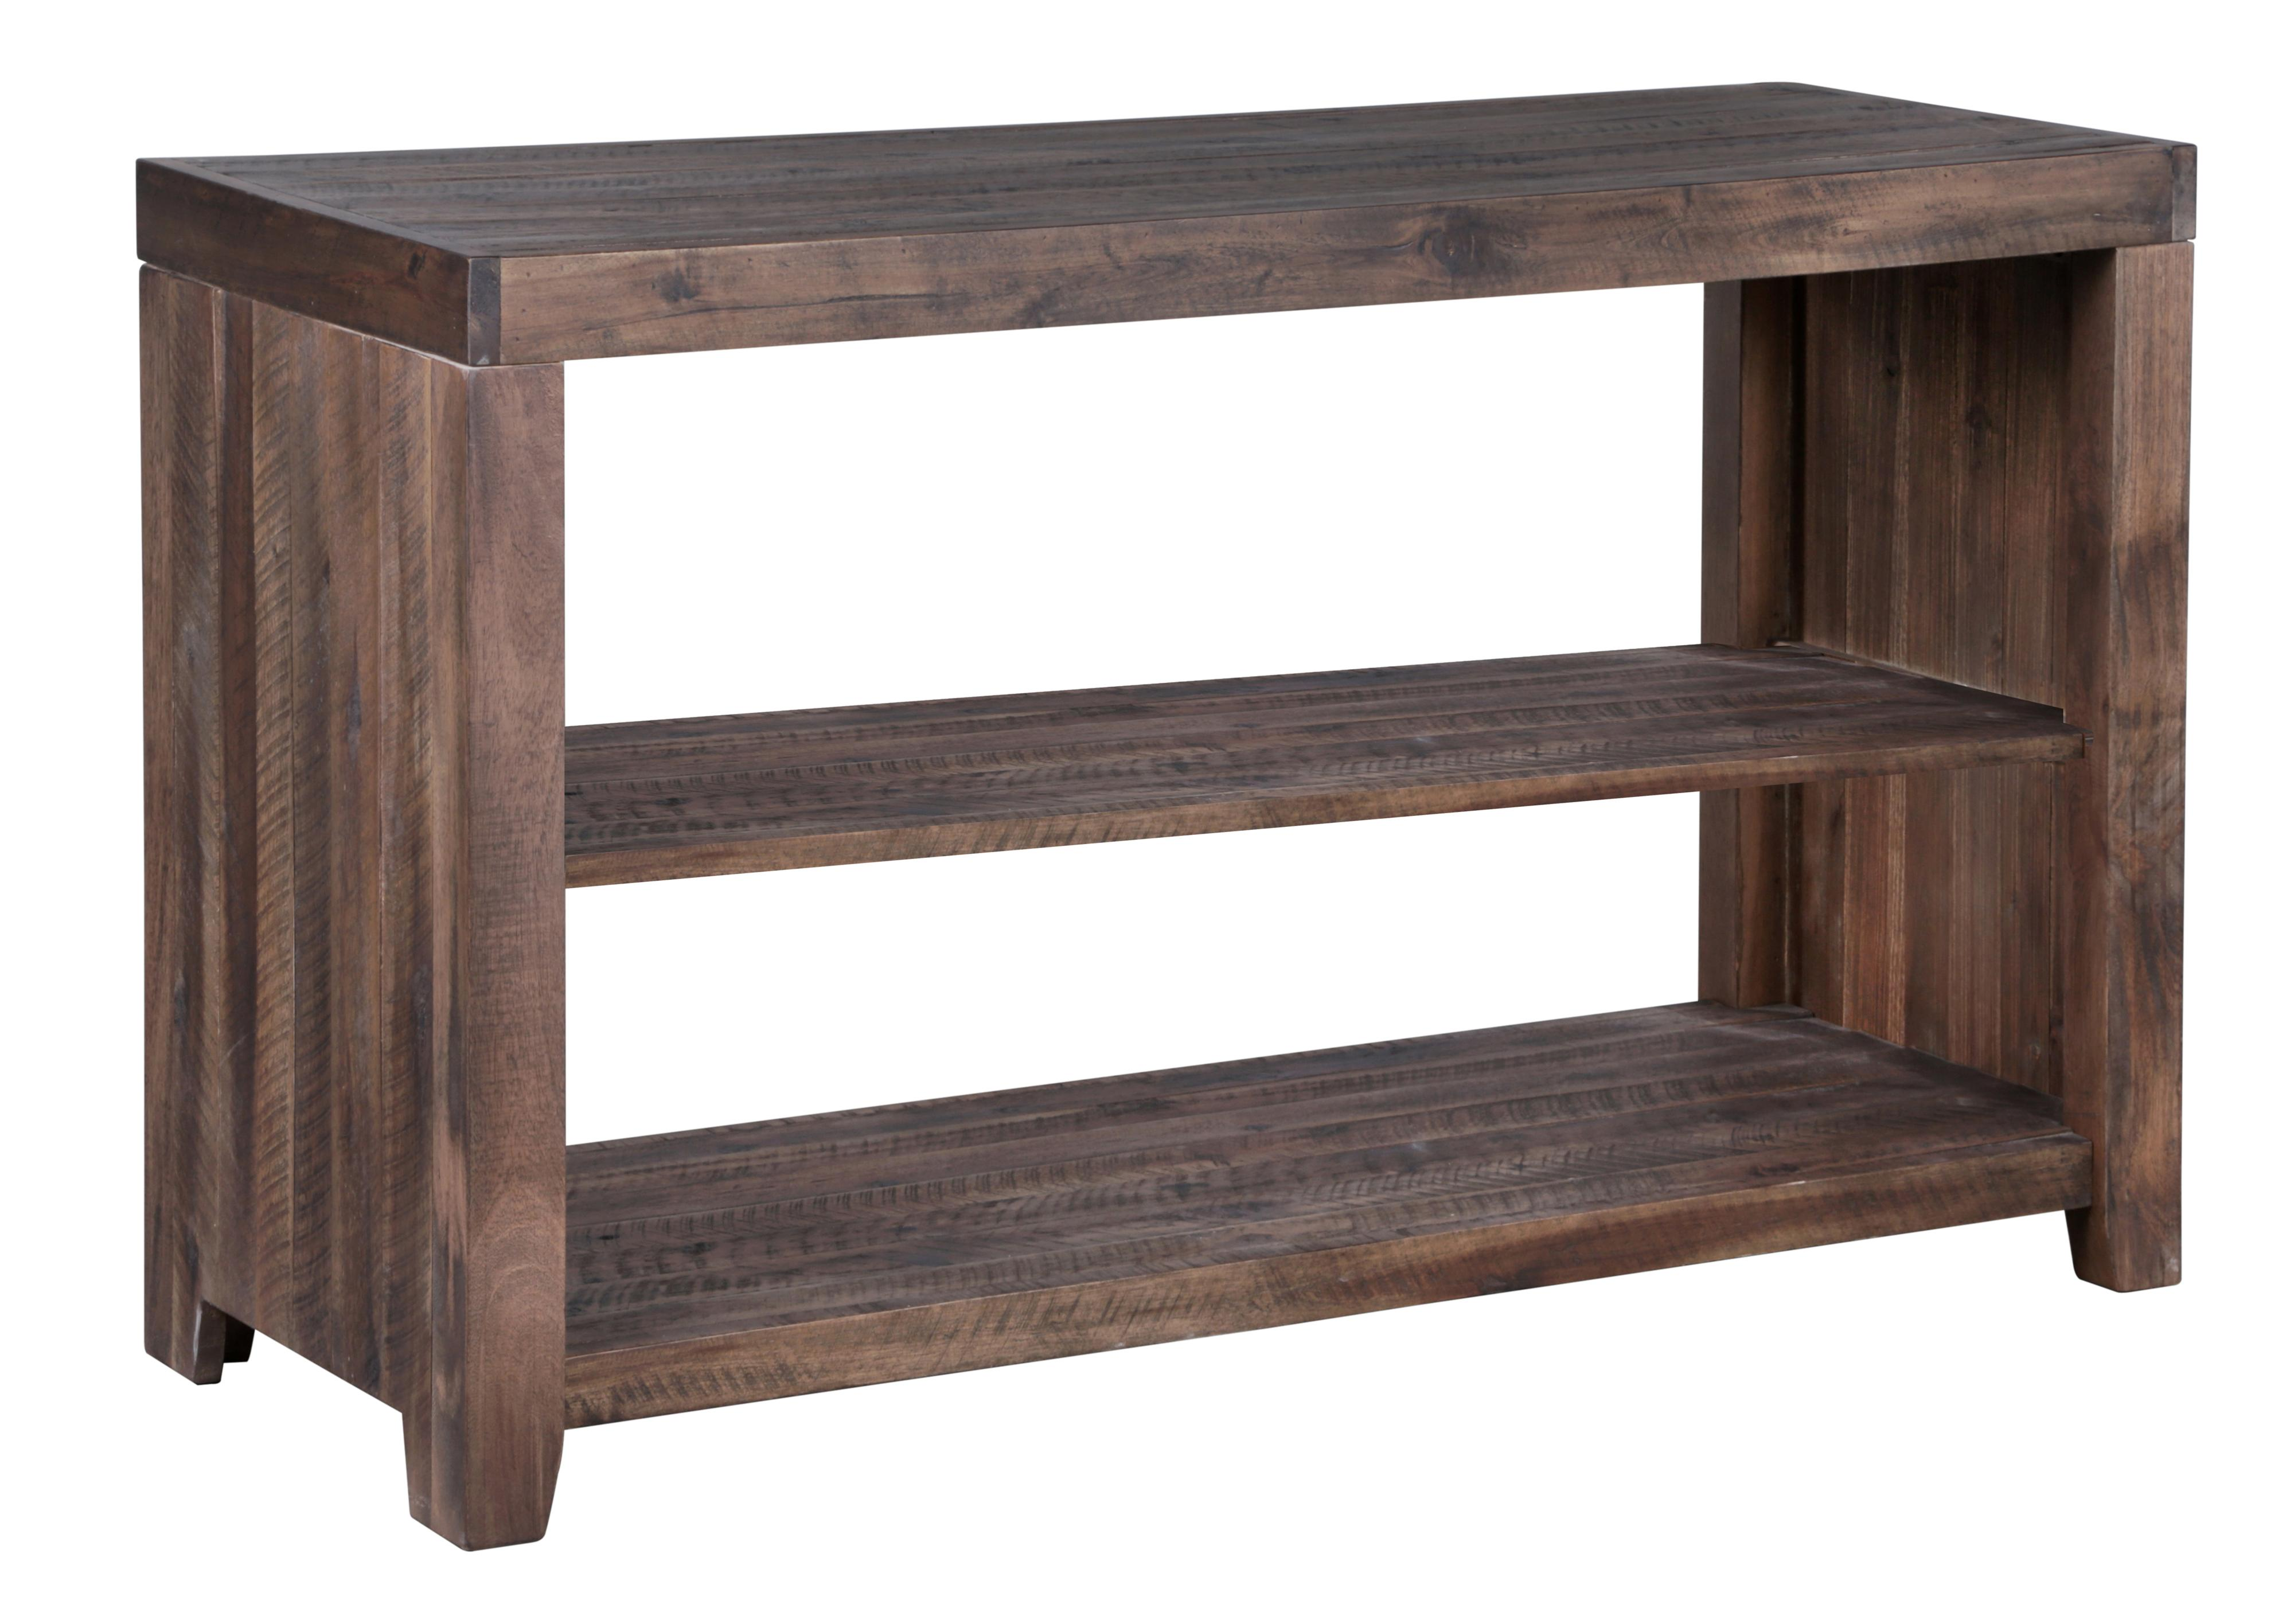 Magnussen Home Caitlyn Rectangular Sofa Table - Item Number: T2528-73